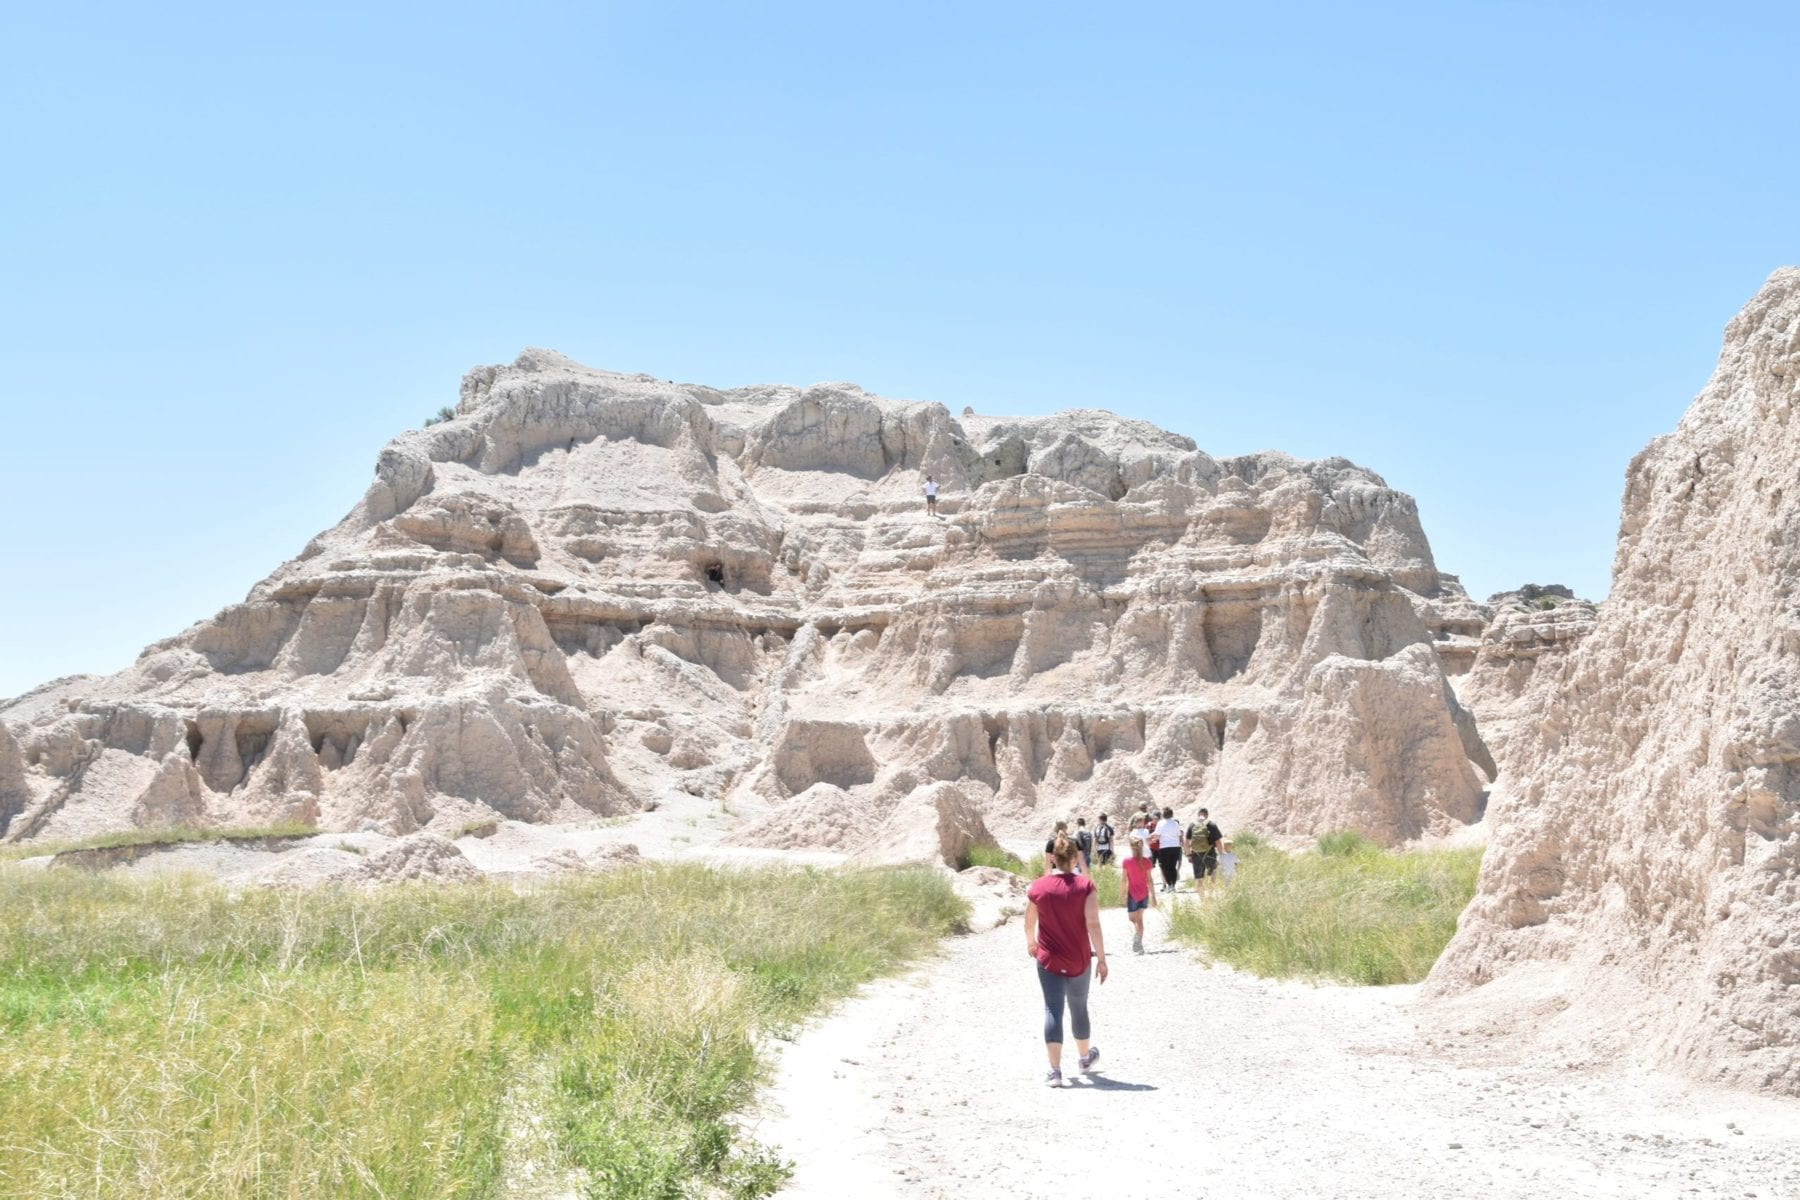 The Best Hikes at Badlands National Park